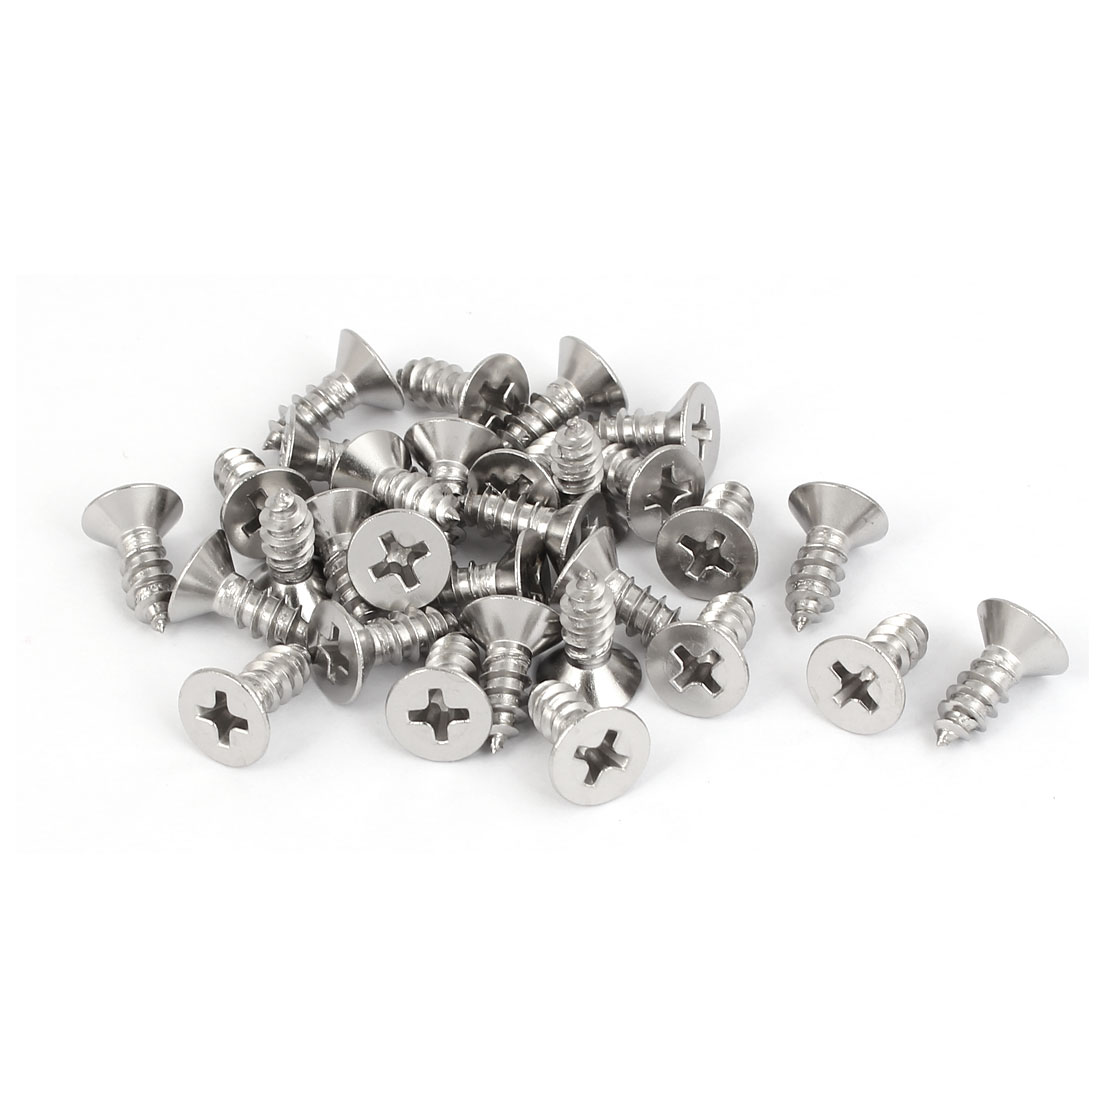 M4.8x13mm 316 Stainless Steel Phillips Flat Head Self Tapping Screws 30pcs